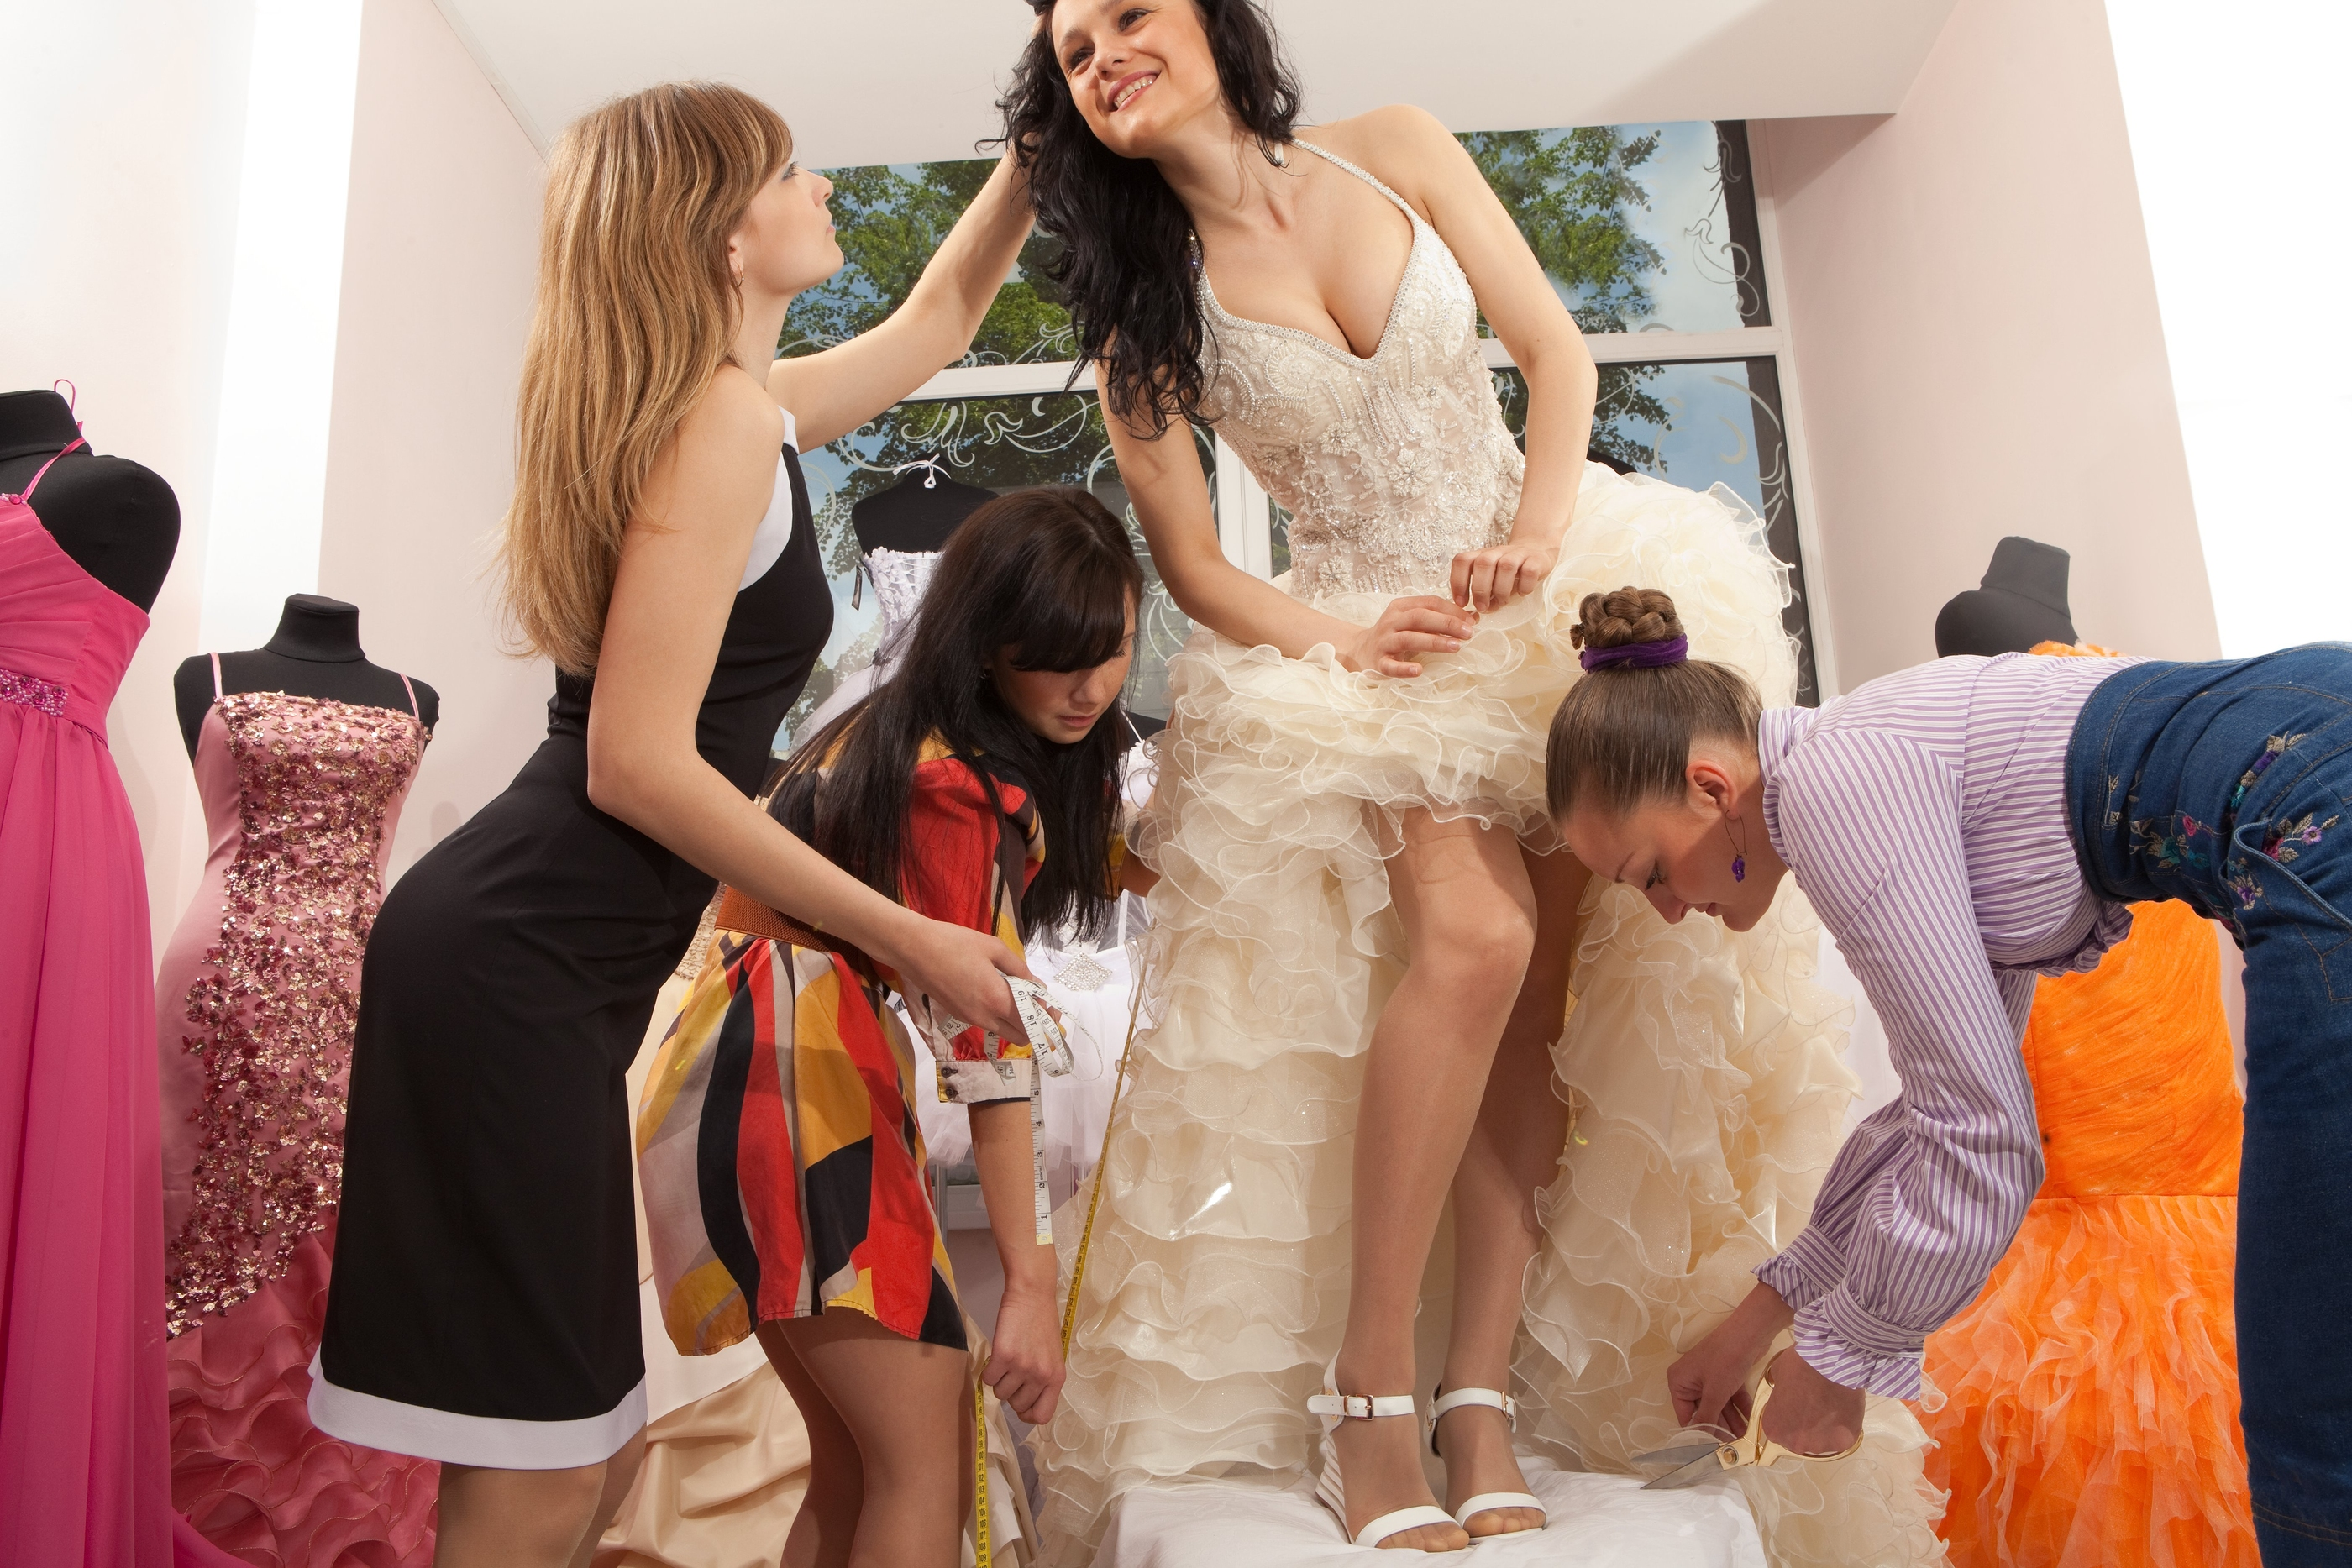 What to Wear to Your Engagement Party